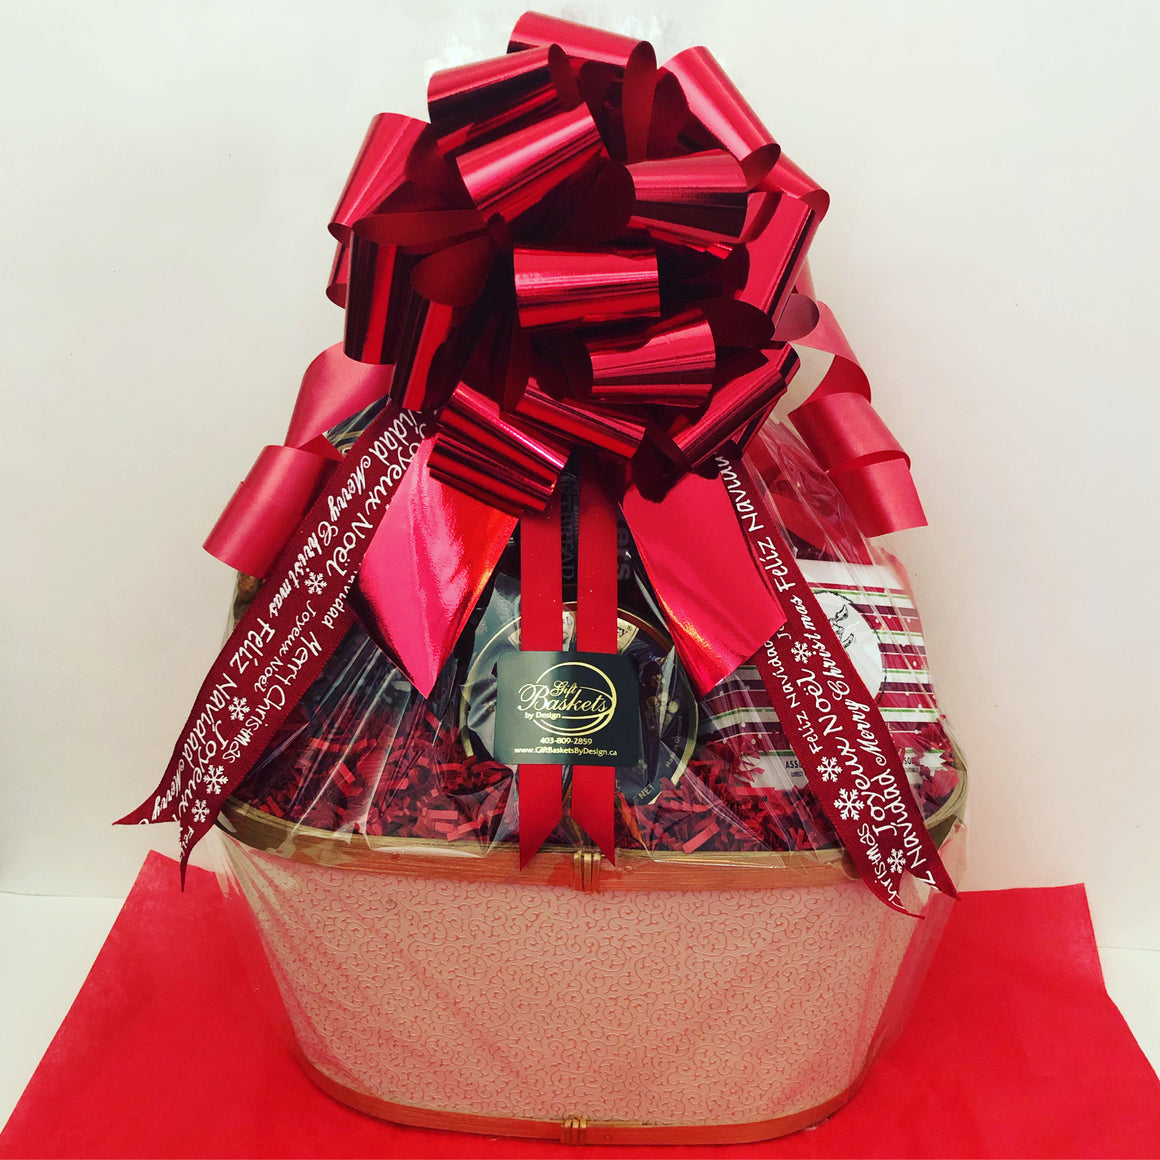 Kringle's Krunchies Snacker Gift basket